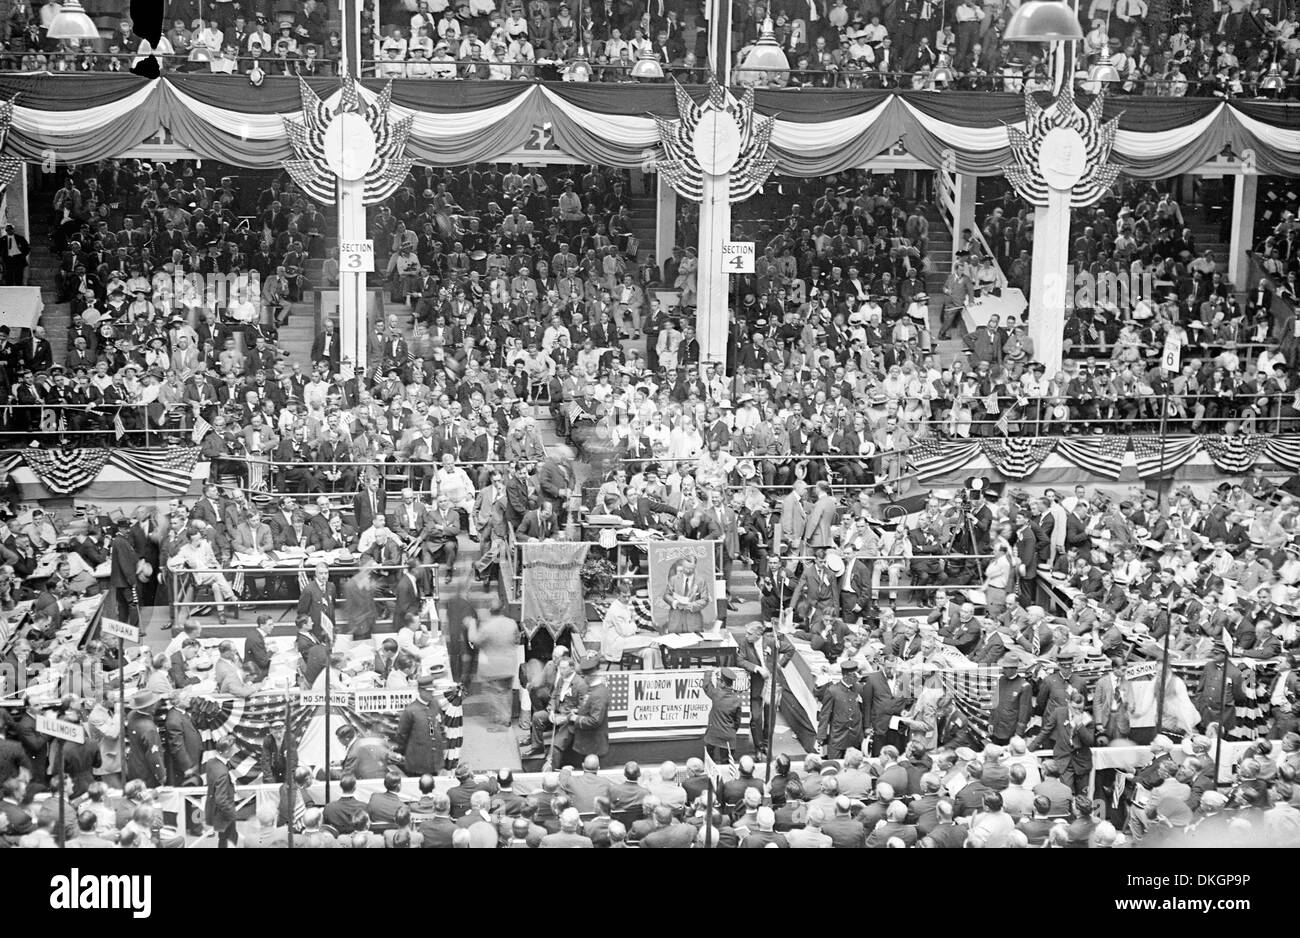 The Democratic Convention in St. Louis, Missouri 1916  Democratic National Convention in St. Louis, MO, with sign 'Woodrow Wilson will win.' - Stock Image